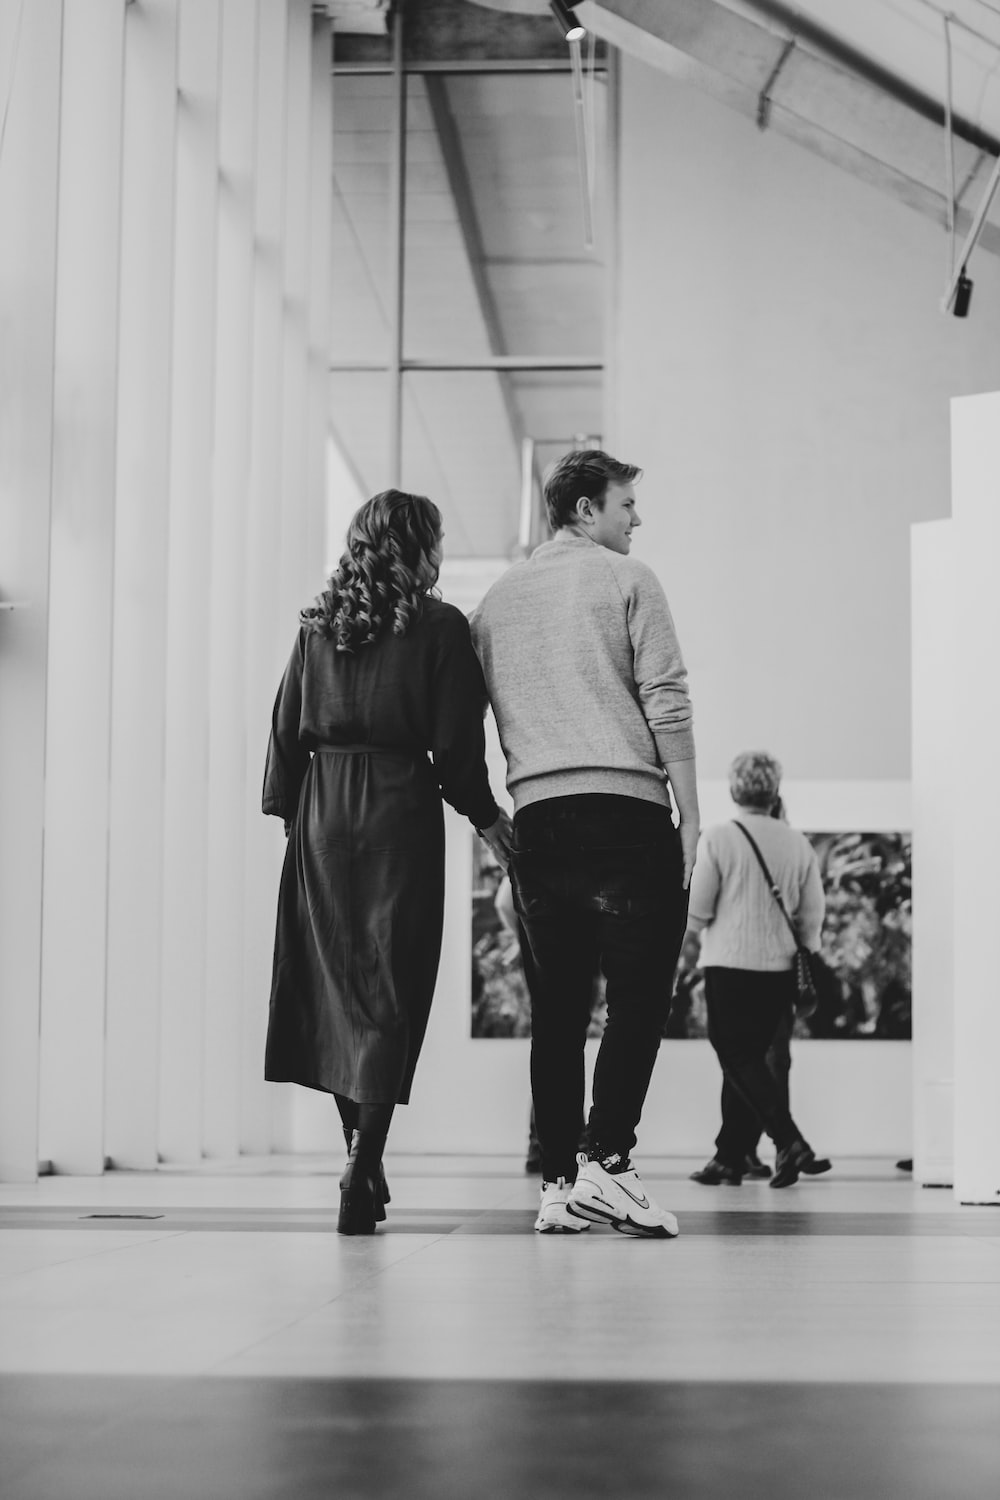 grayscale photography of man and woman walking inside building